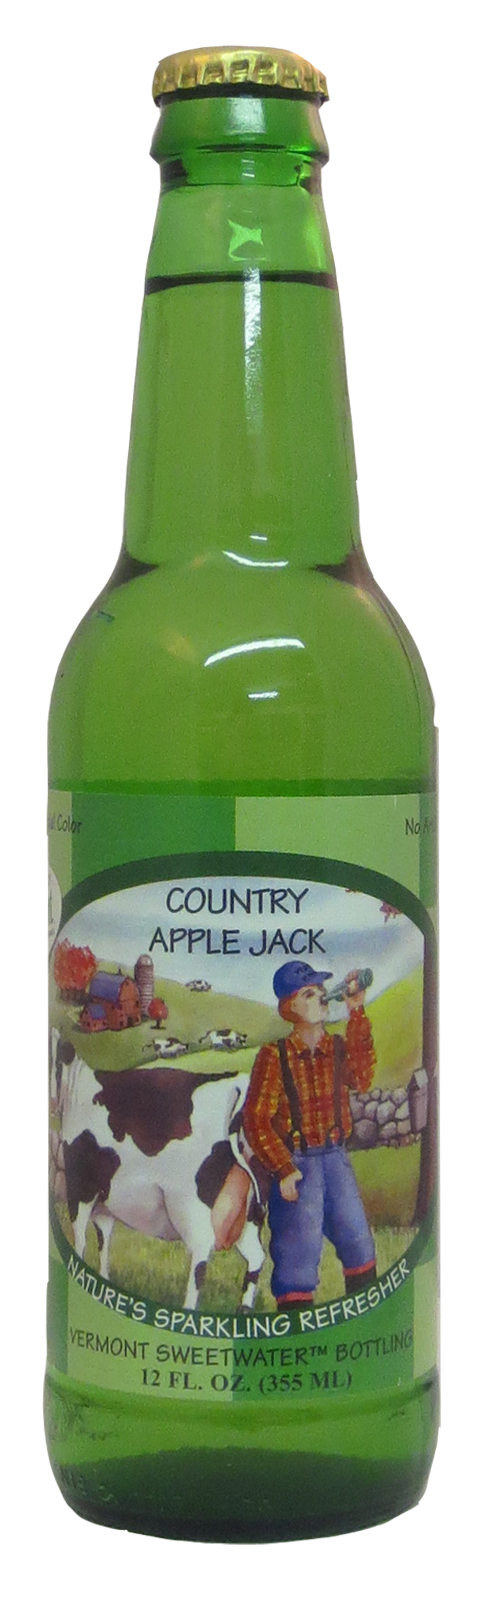 Vermont Sweetwater Country Apple Jack